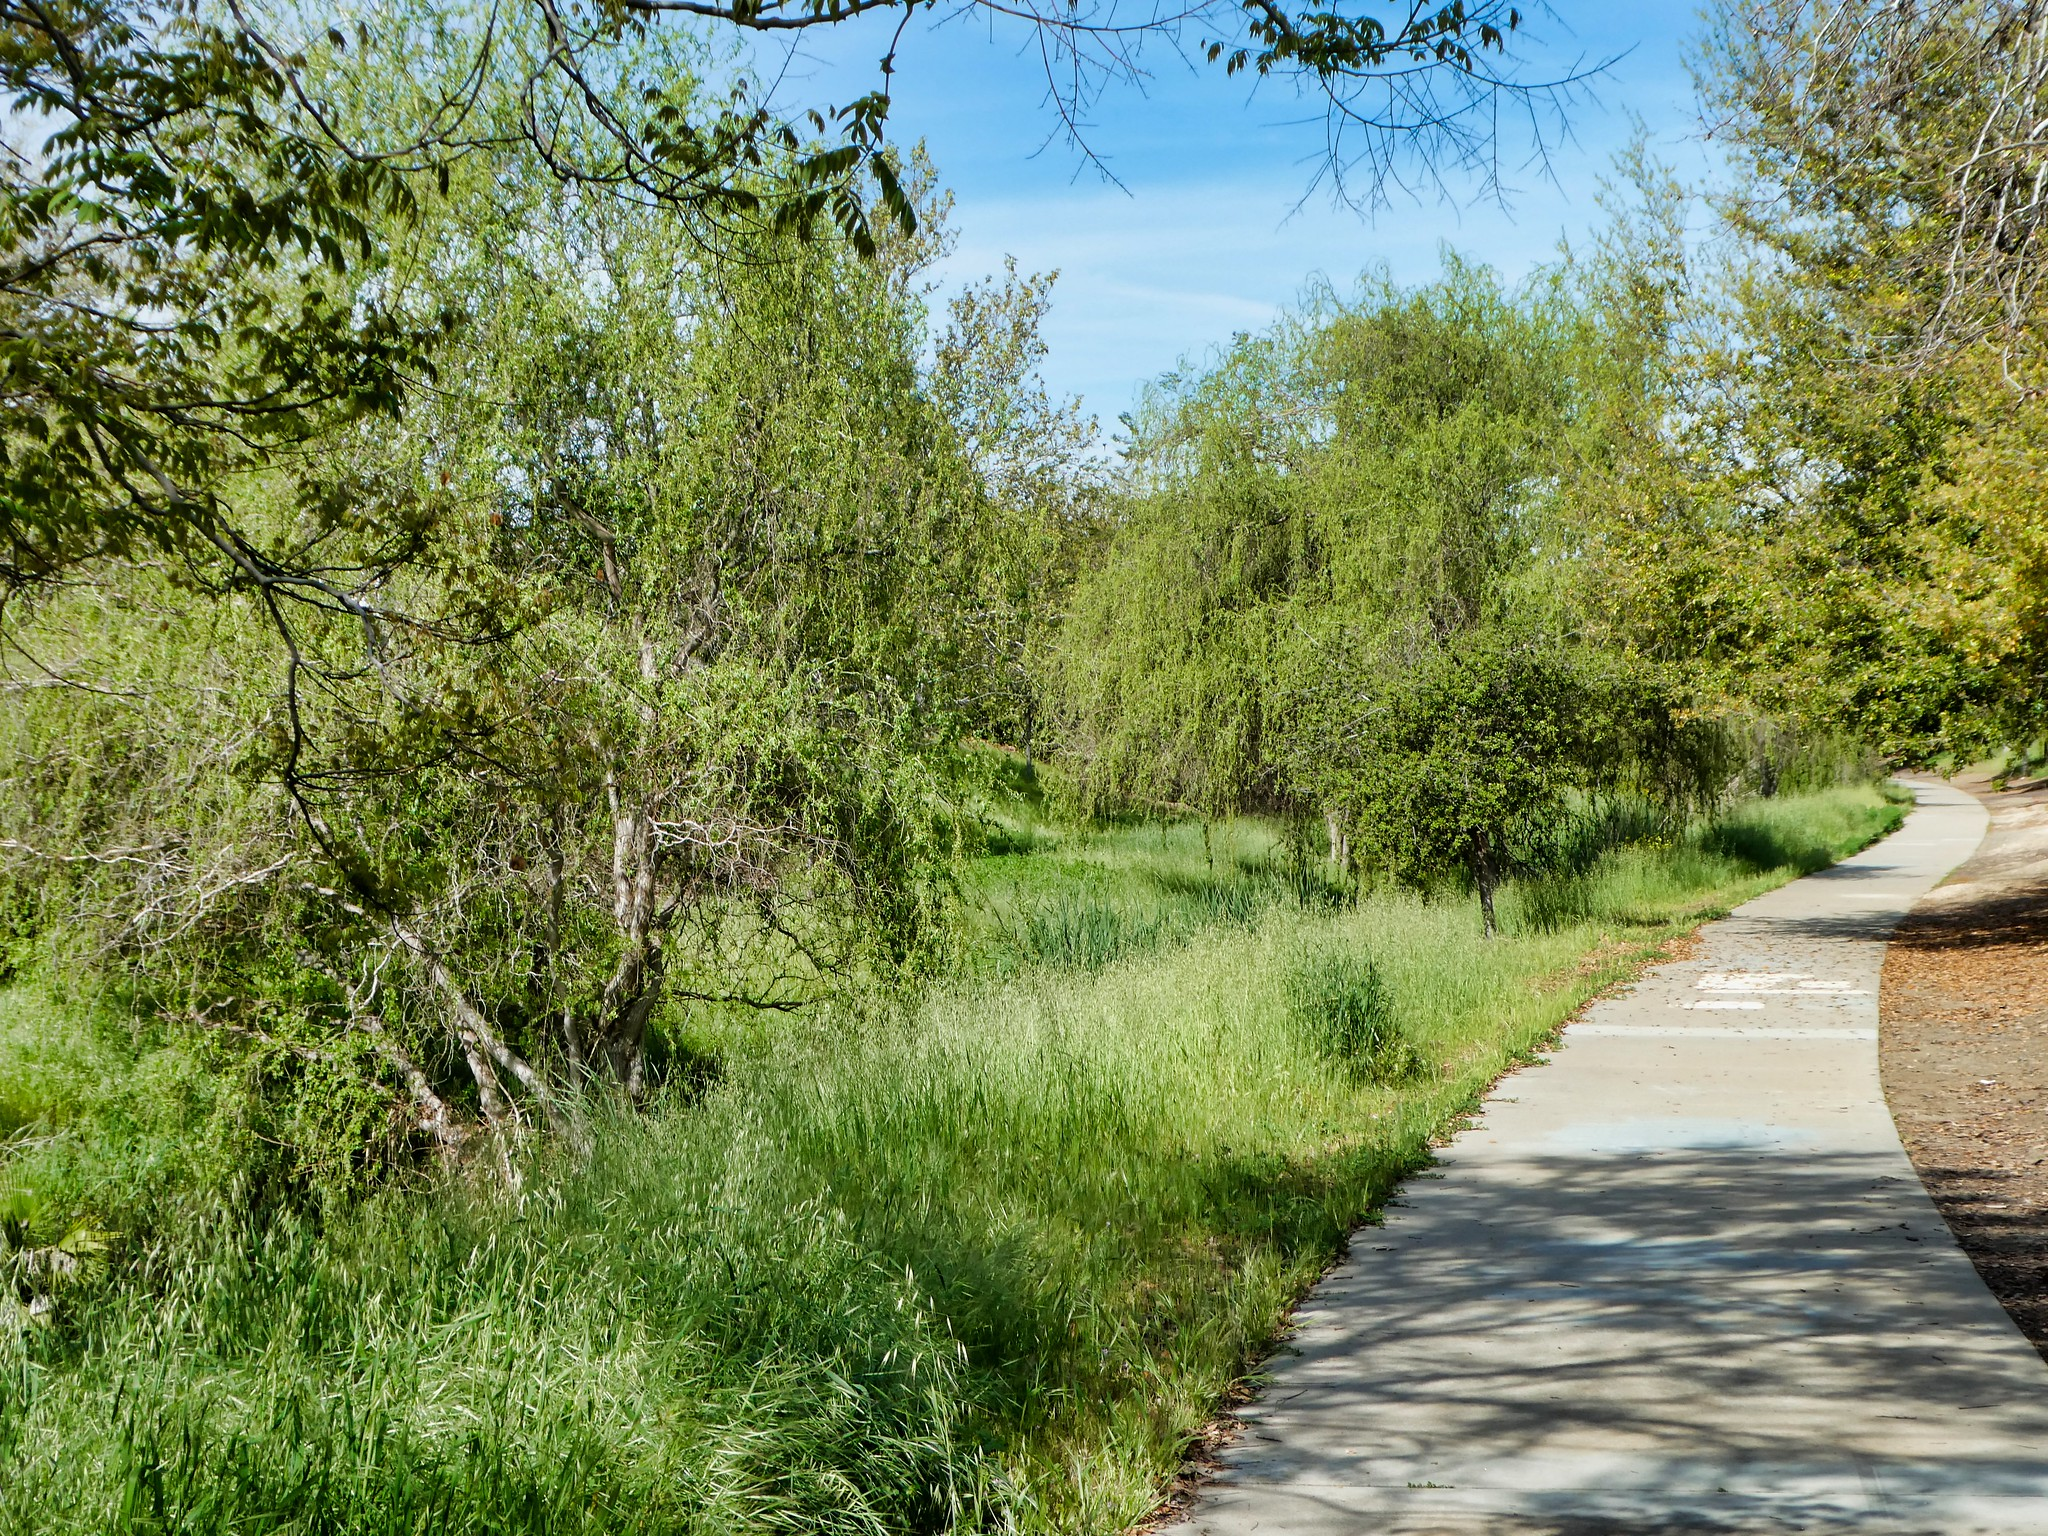 2019-04-08 - Outdoor Photography - Nature - Walking along the Catanzaro Trail